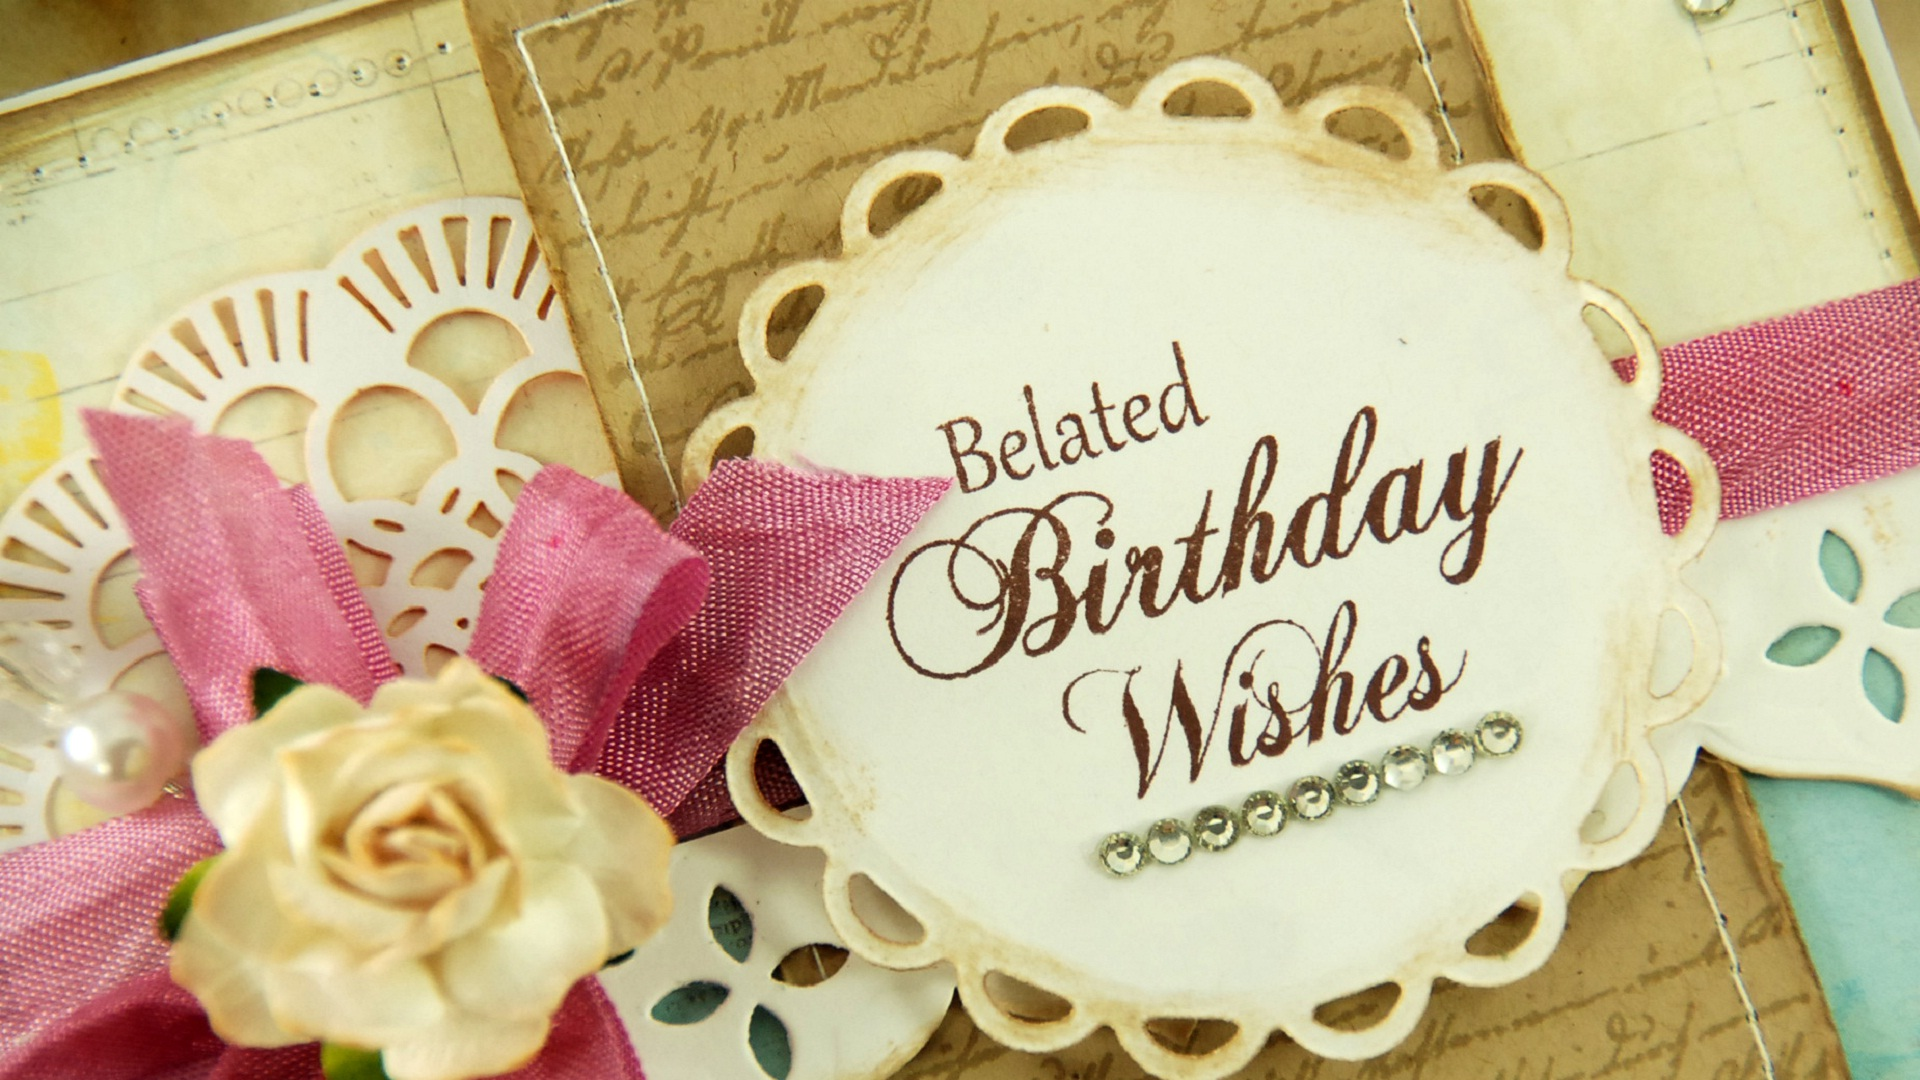 hd wallpapers for birthday wishes ; birthday-wishes-marvelous-gift-and-good-desires-wallpapers-and-backgrounds